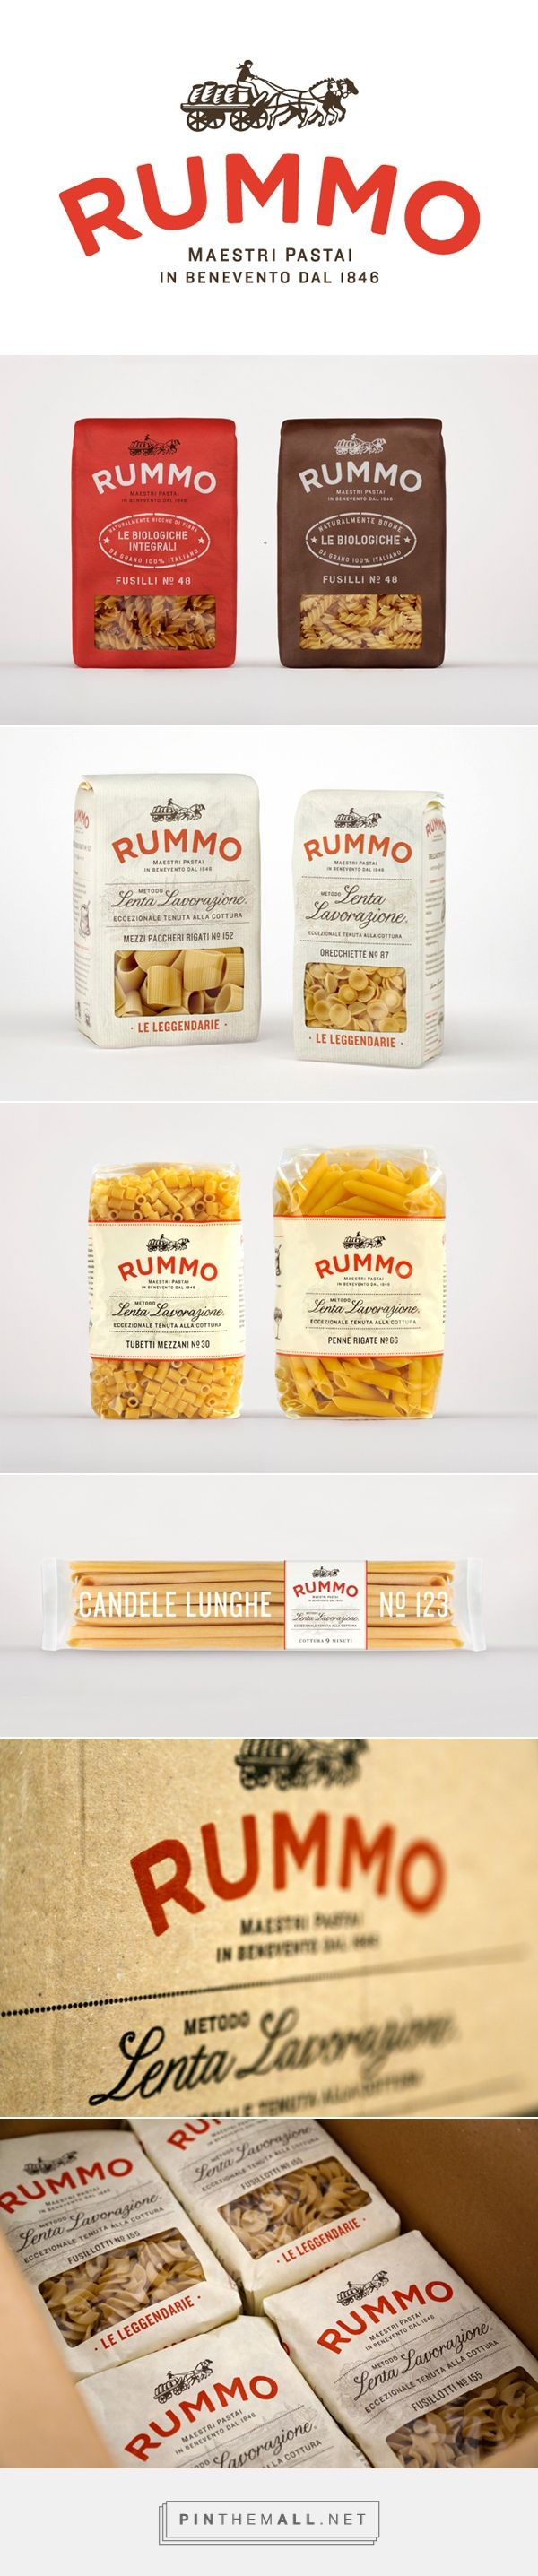 Rummo - Italian pasta packaging designArt and design inspiration from around the world – CreativeRoots